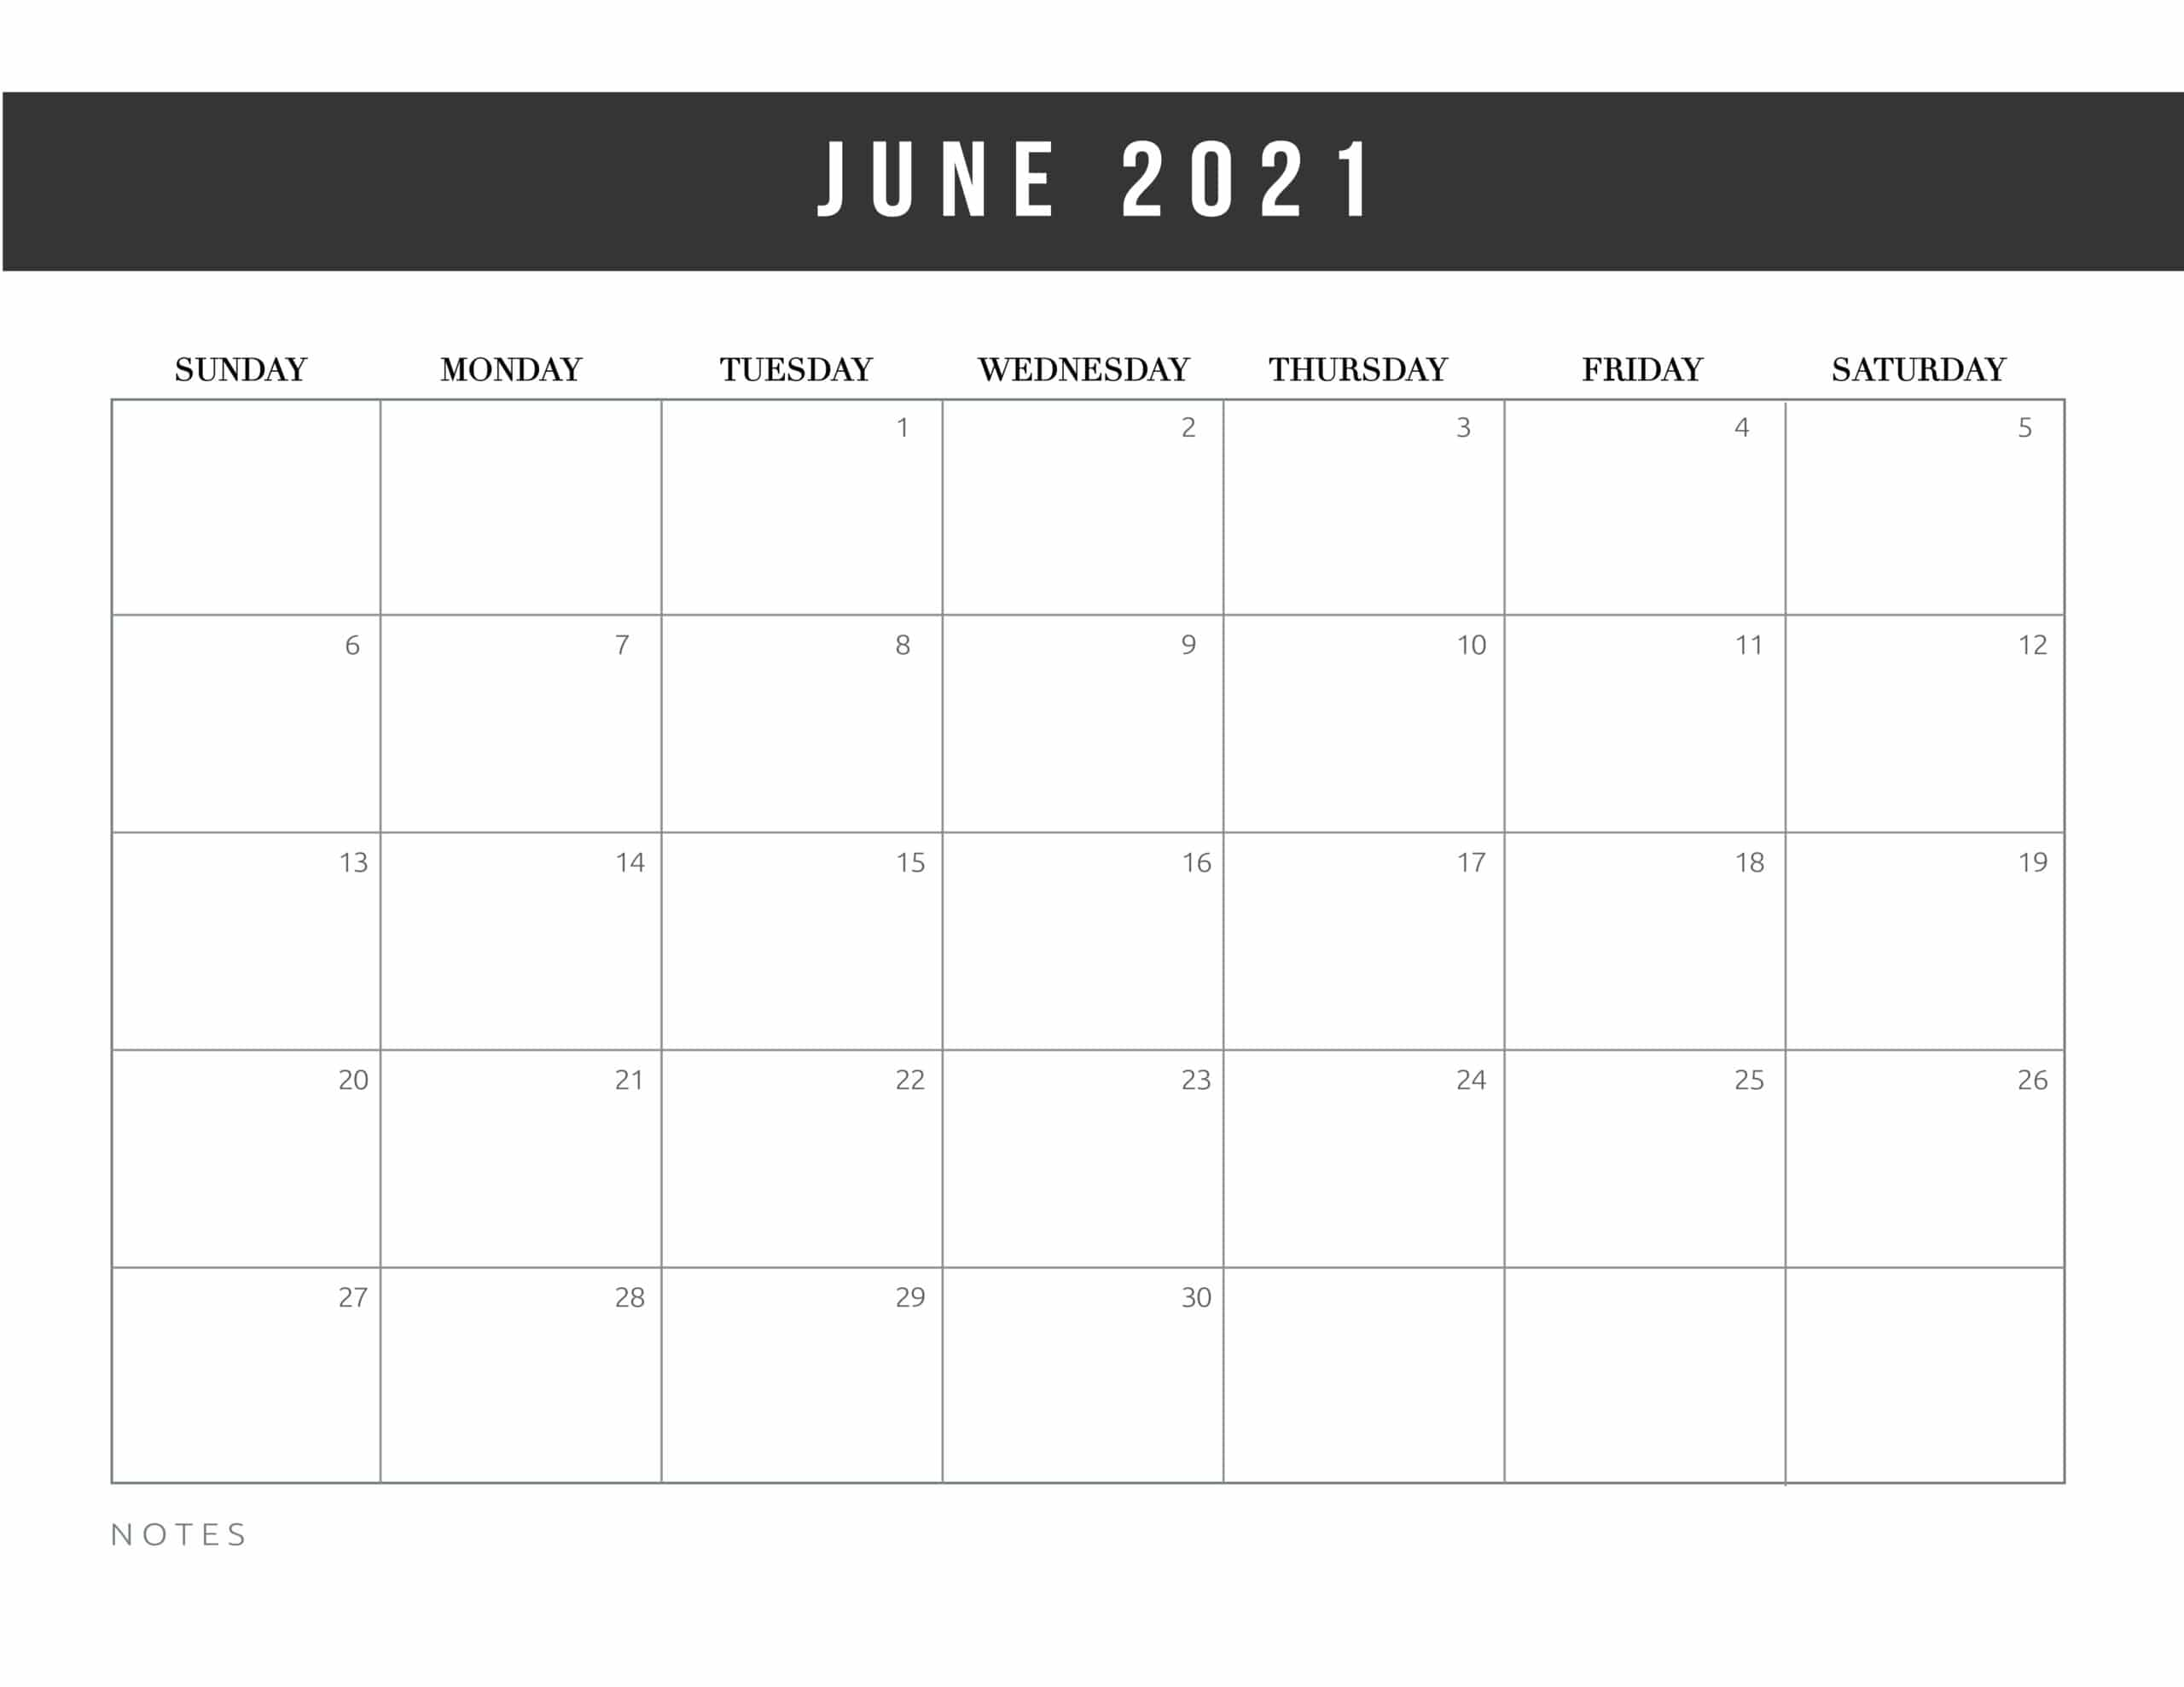 Free Printable June 15 Calendars - 15's of Styles - All Free!